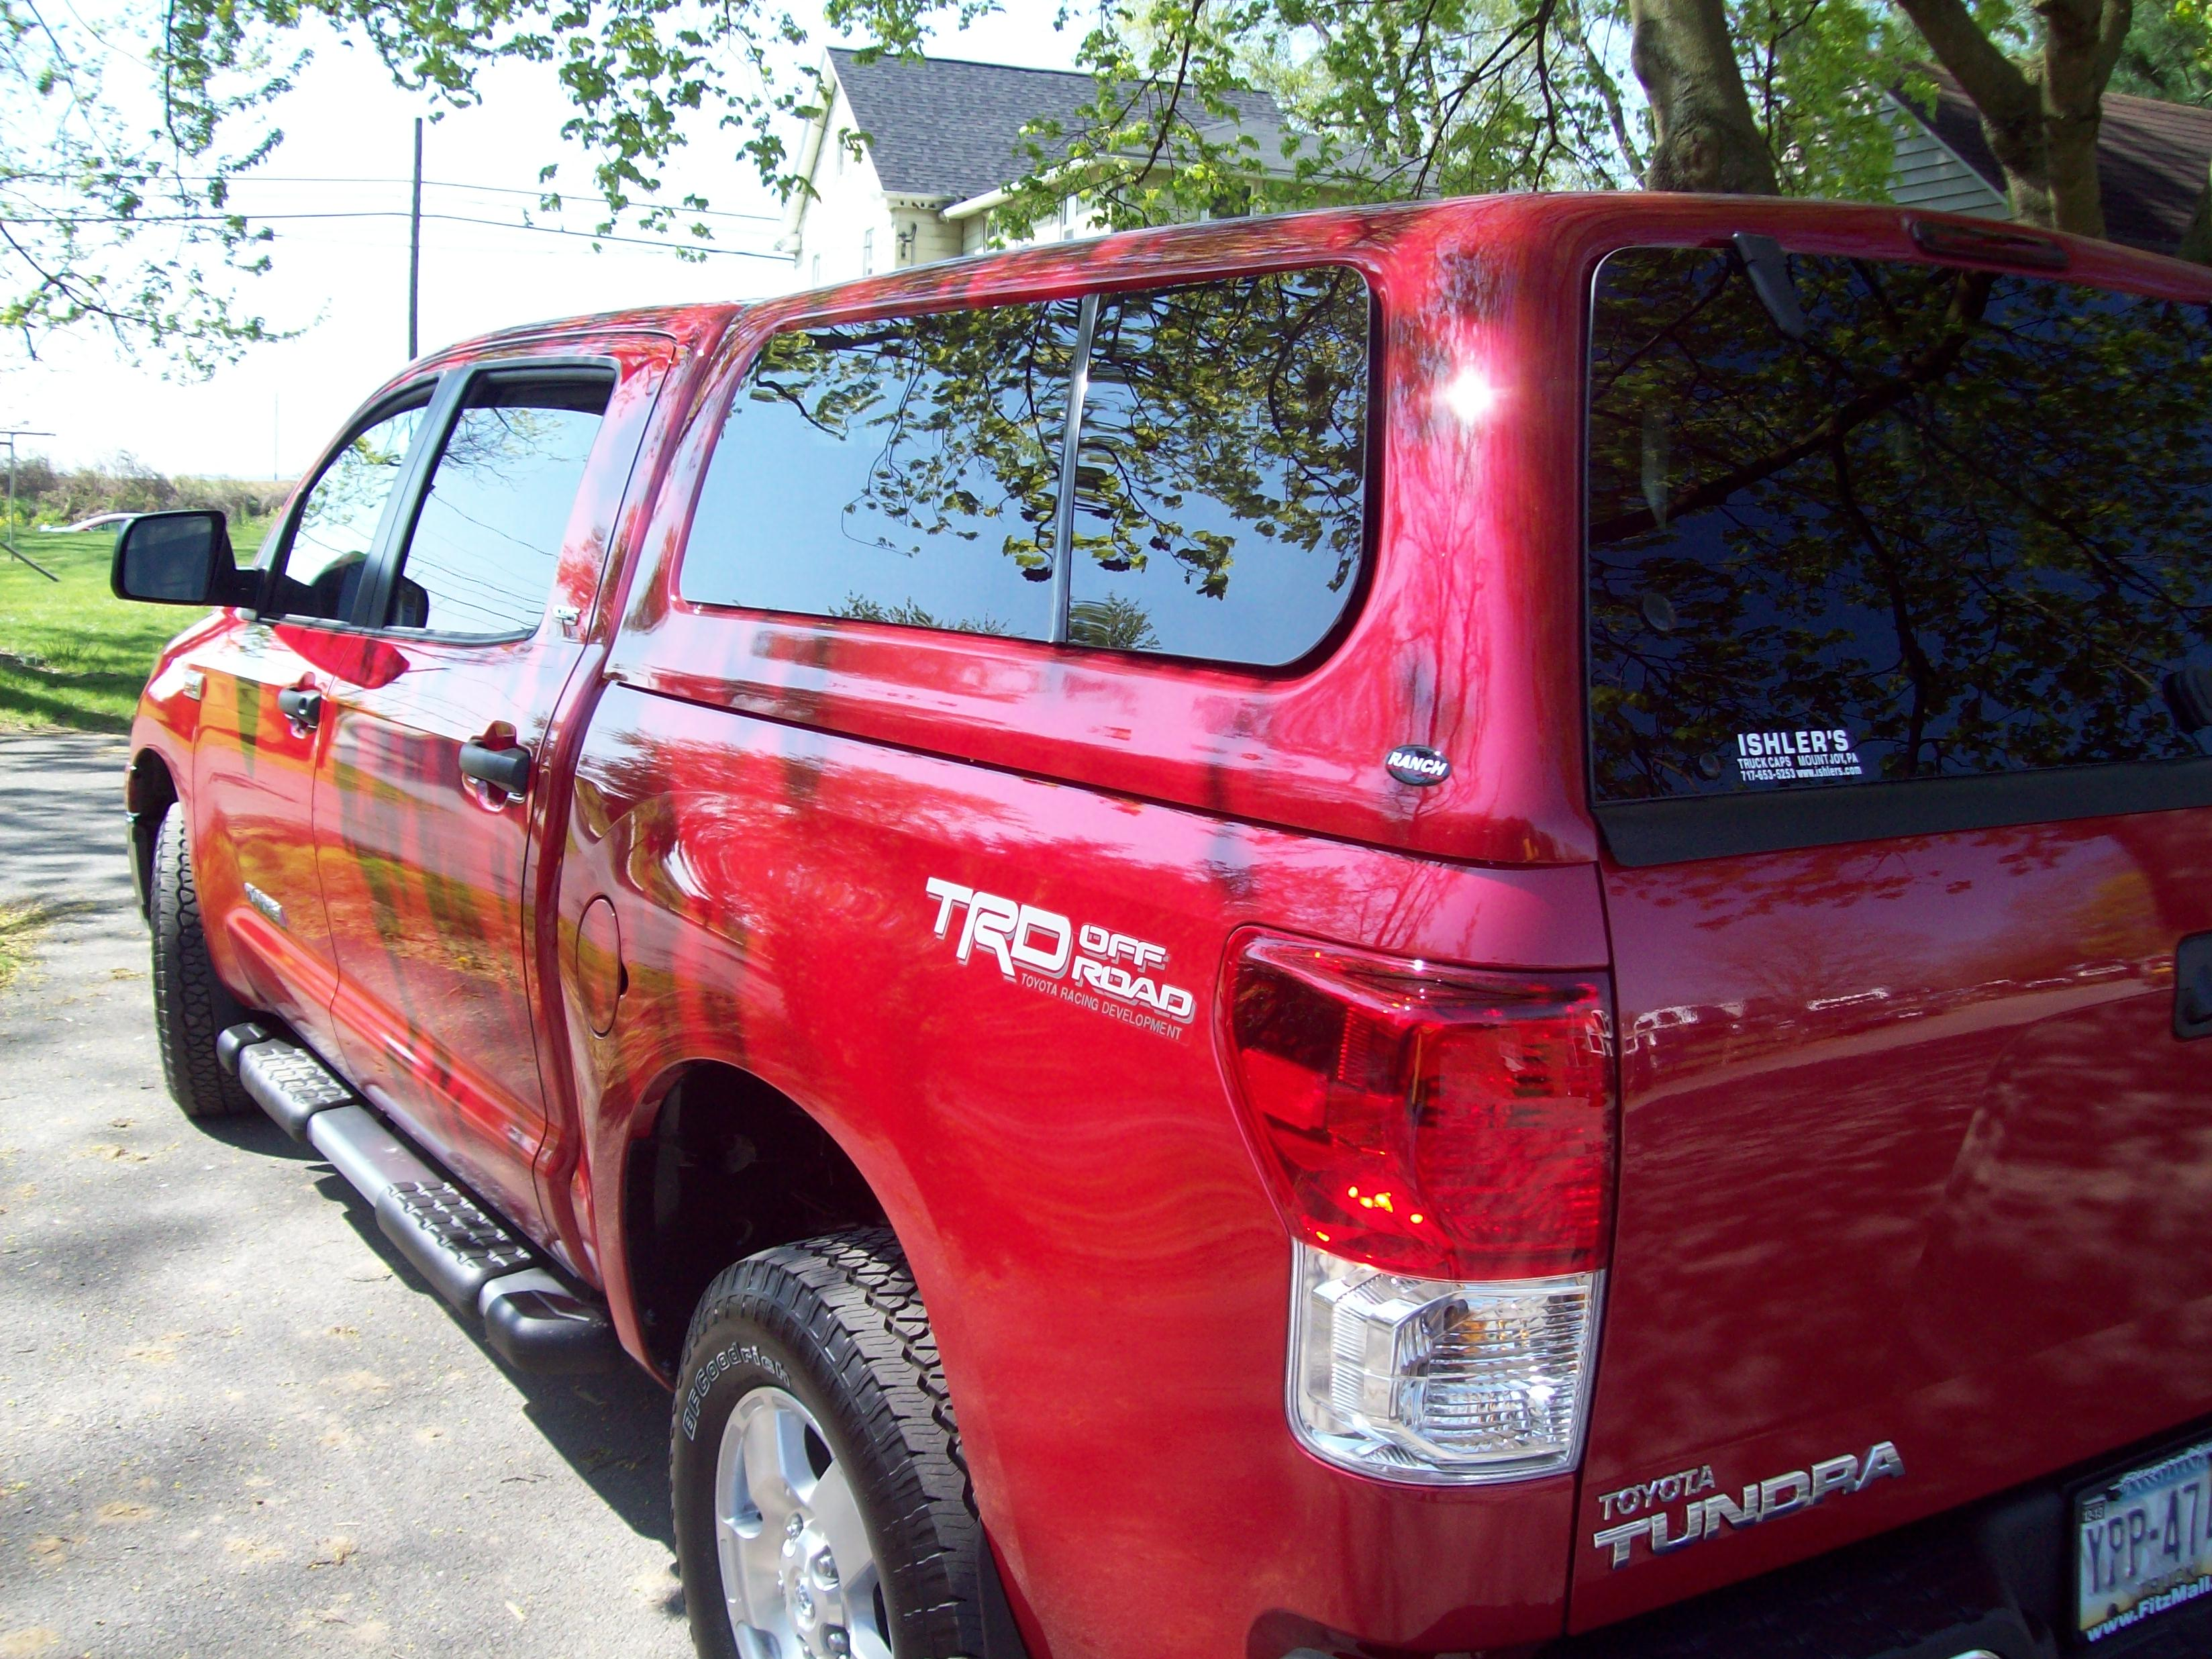 2013 Toyota Tundra With A Ranch Premier Ishler S Truck Caps